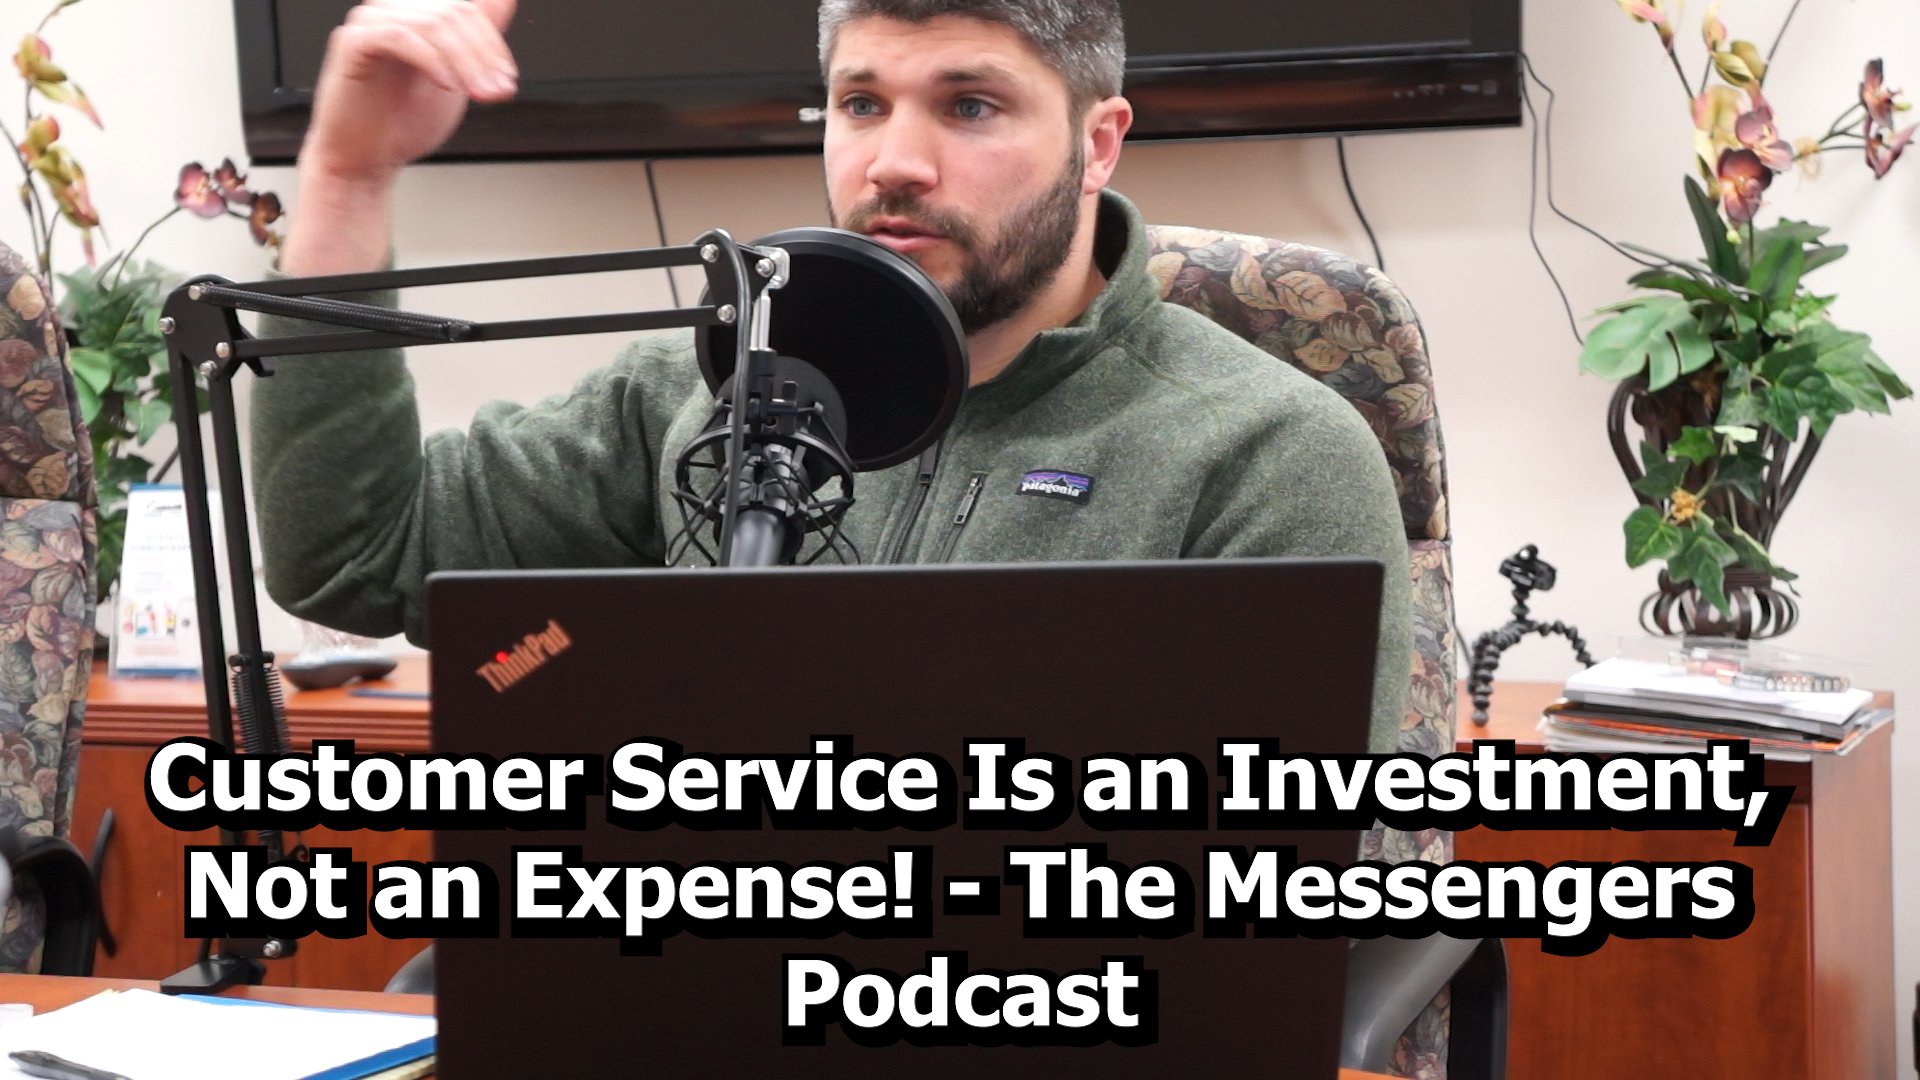 Customer Service is an Investment, Not an Expense! - The Messengers